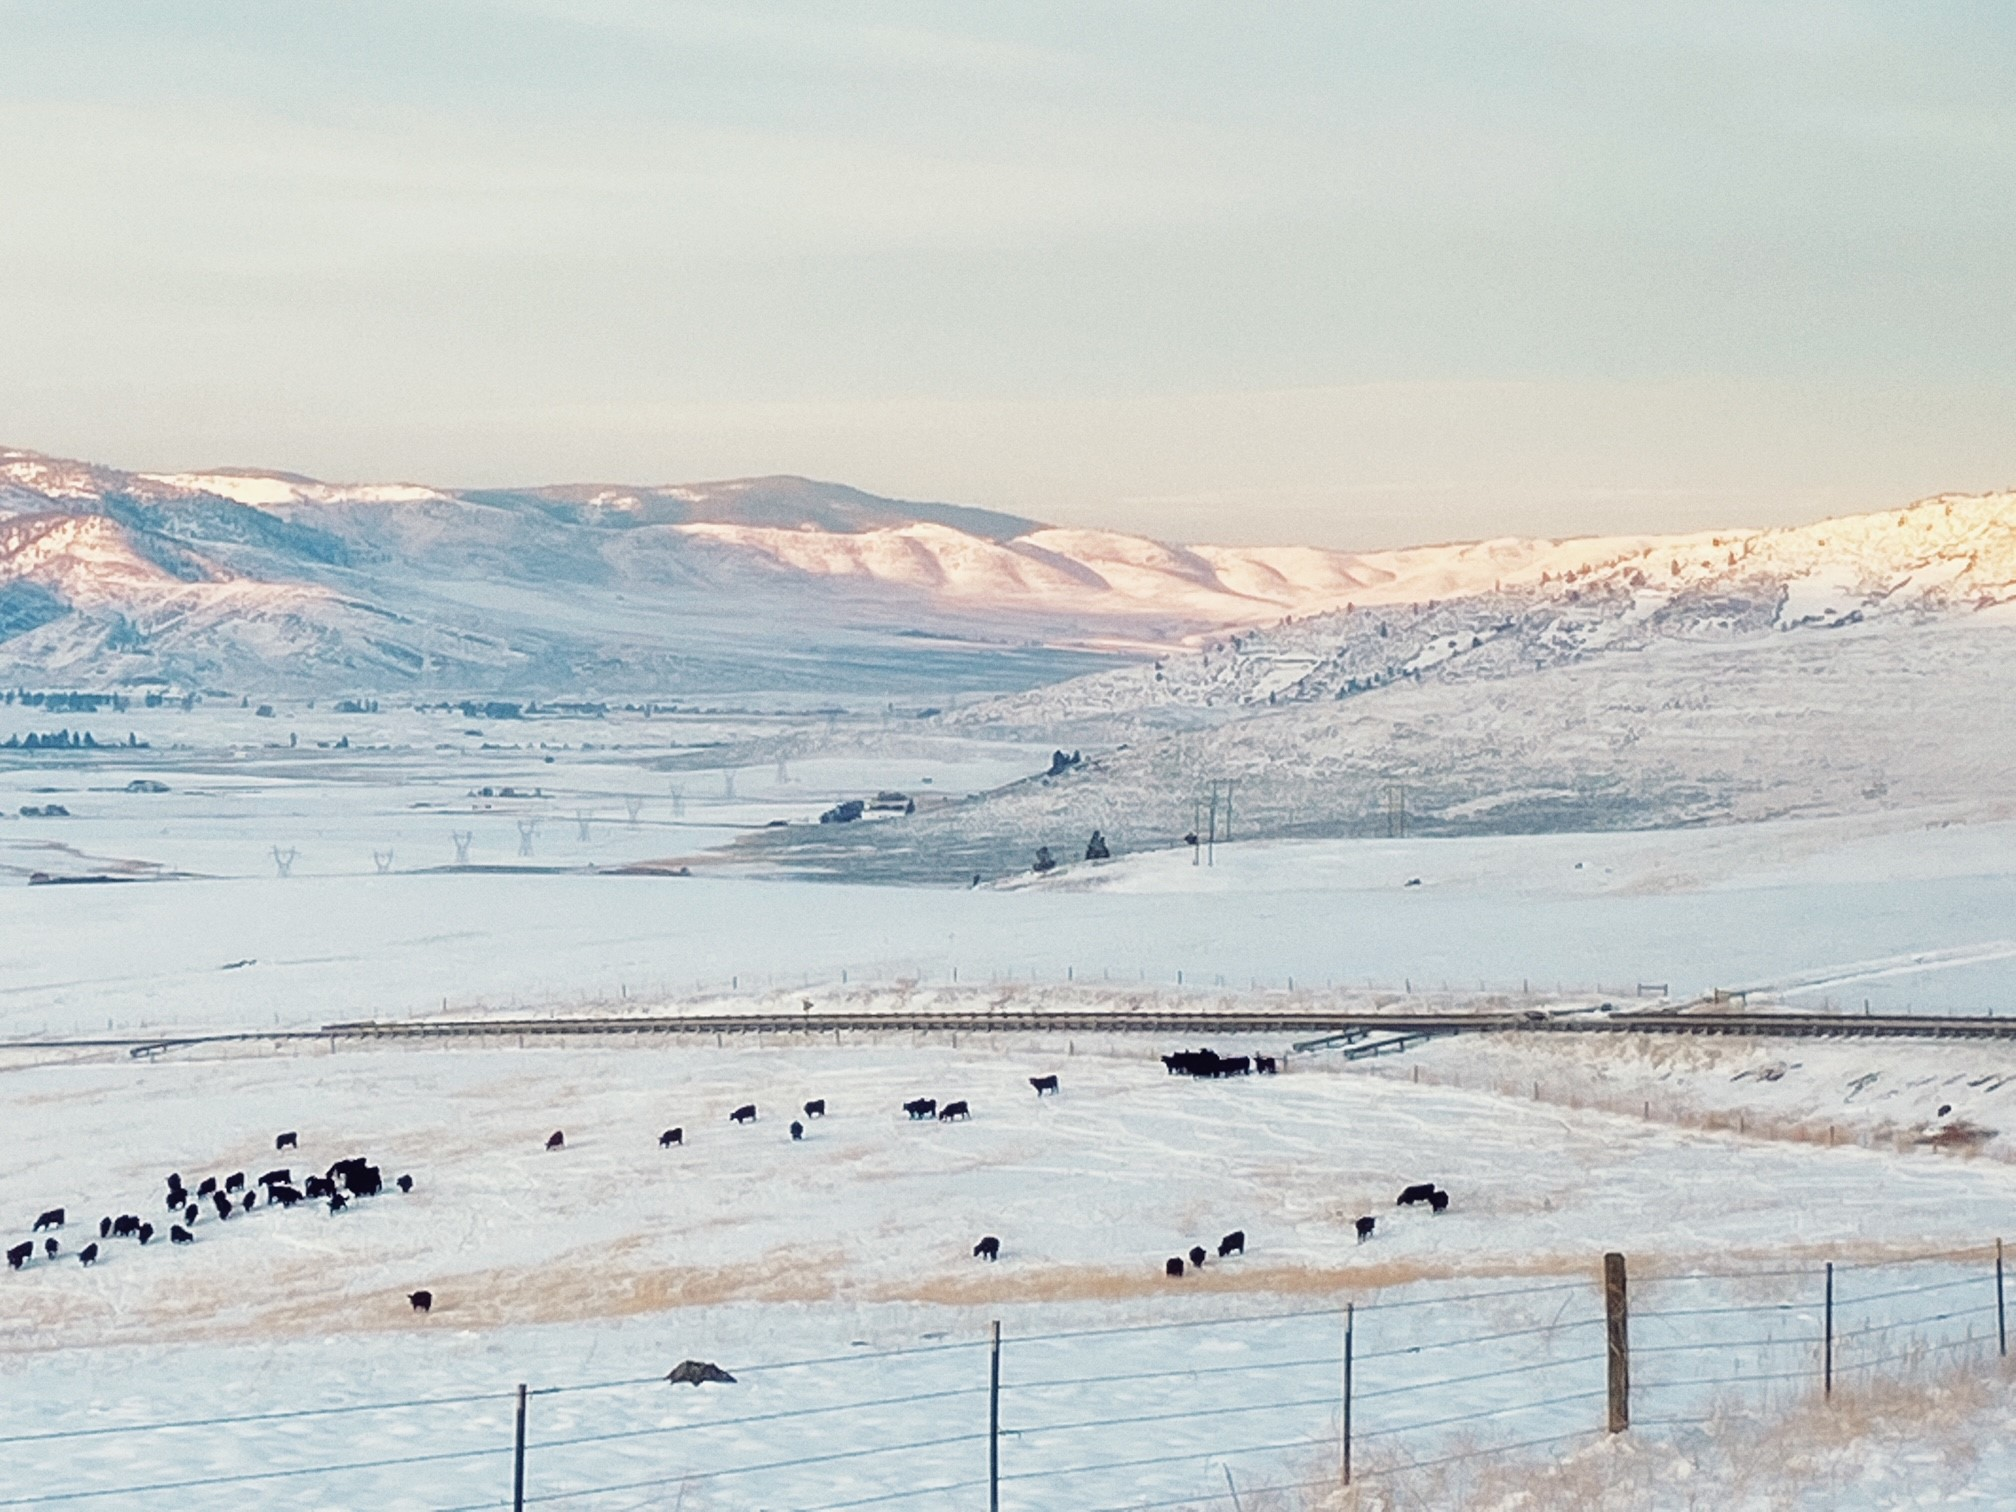 Landscape with snow and cattle